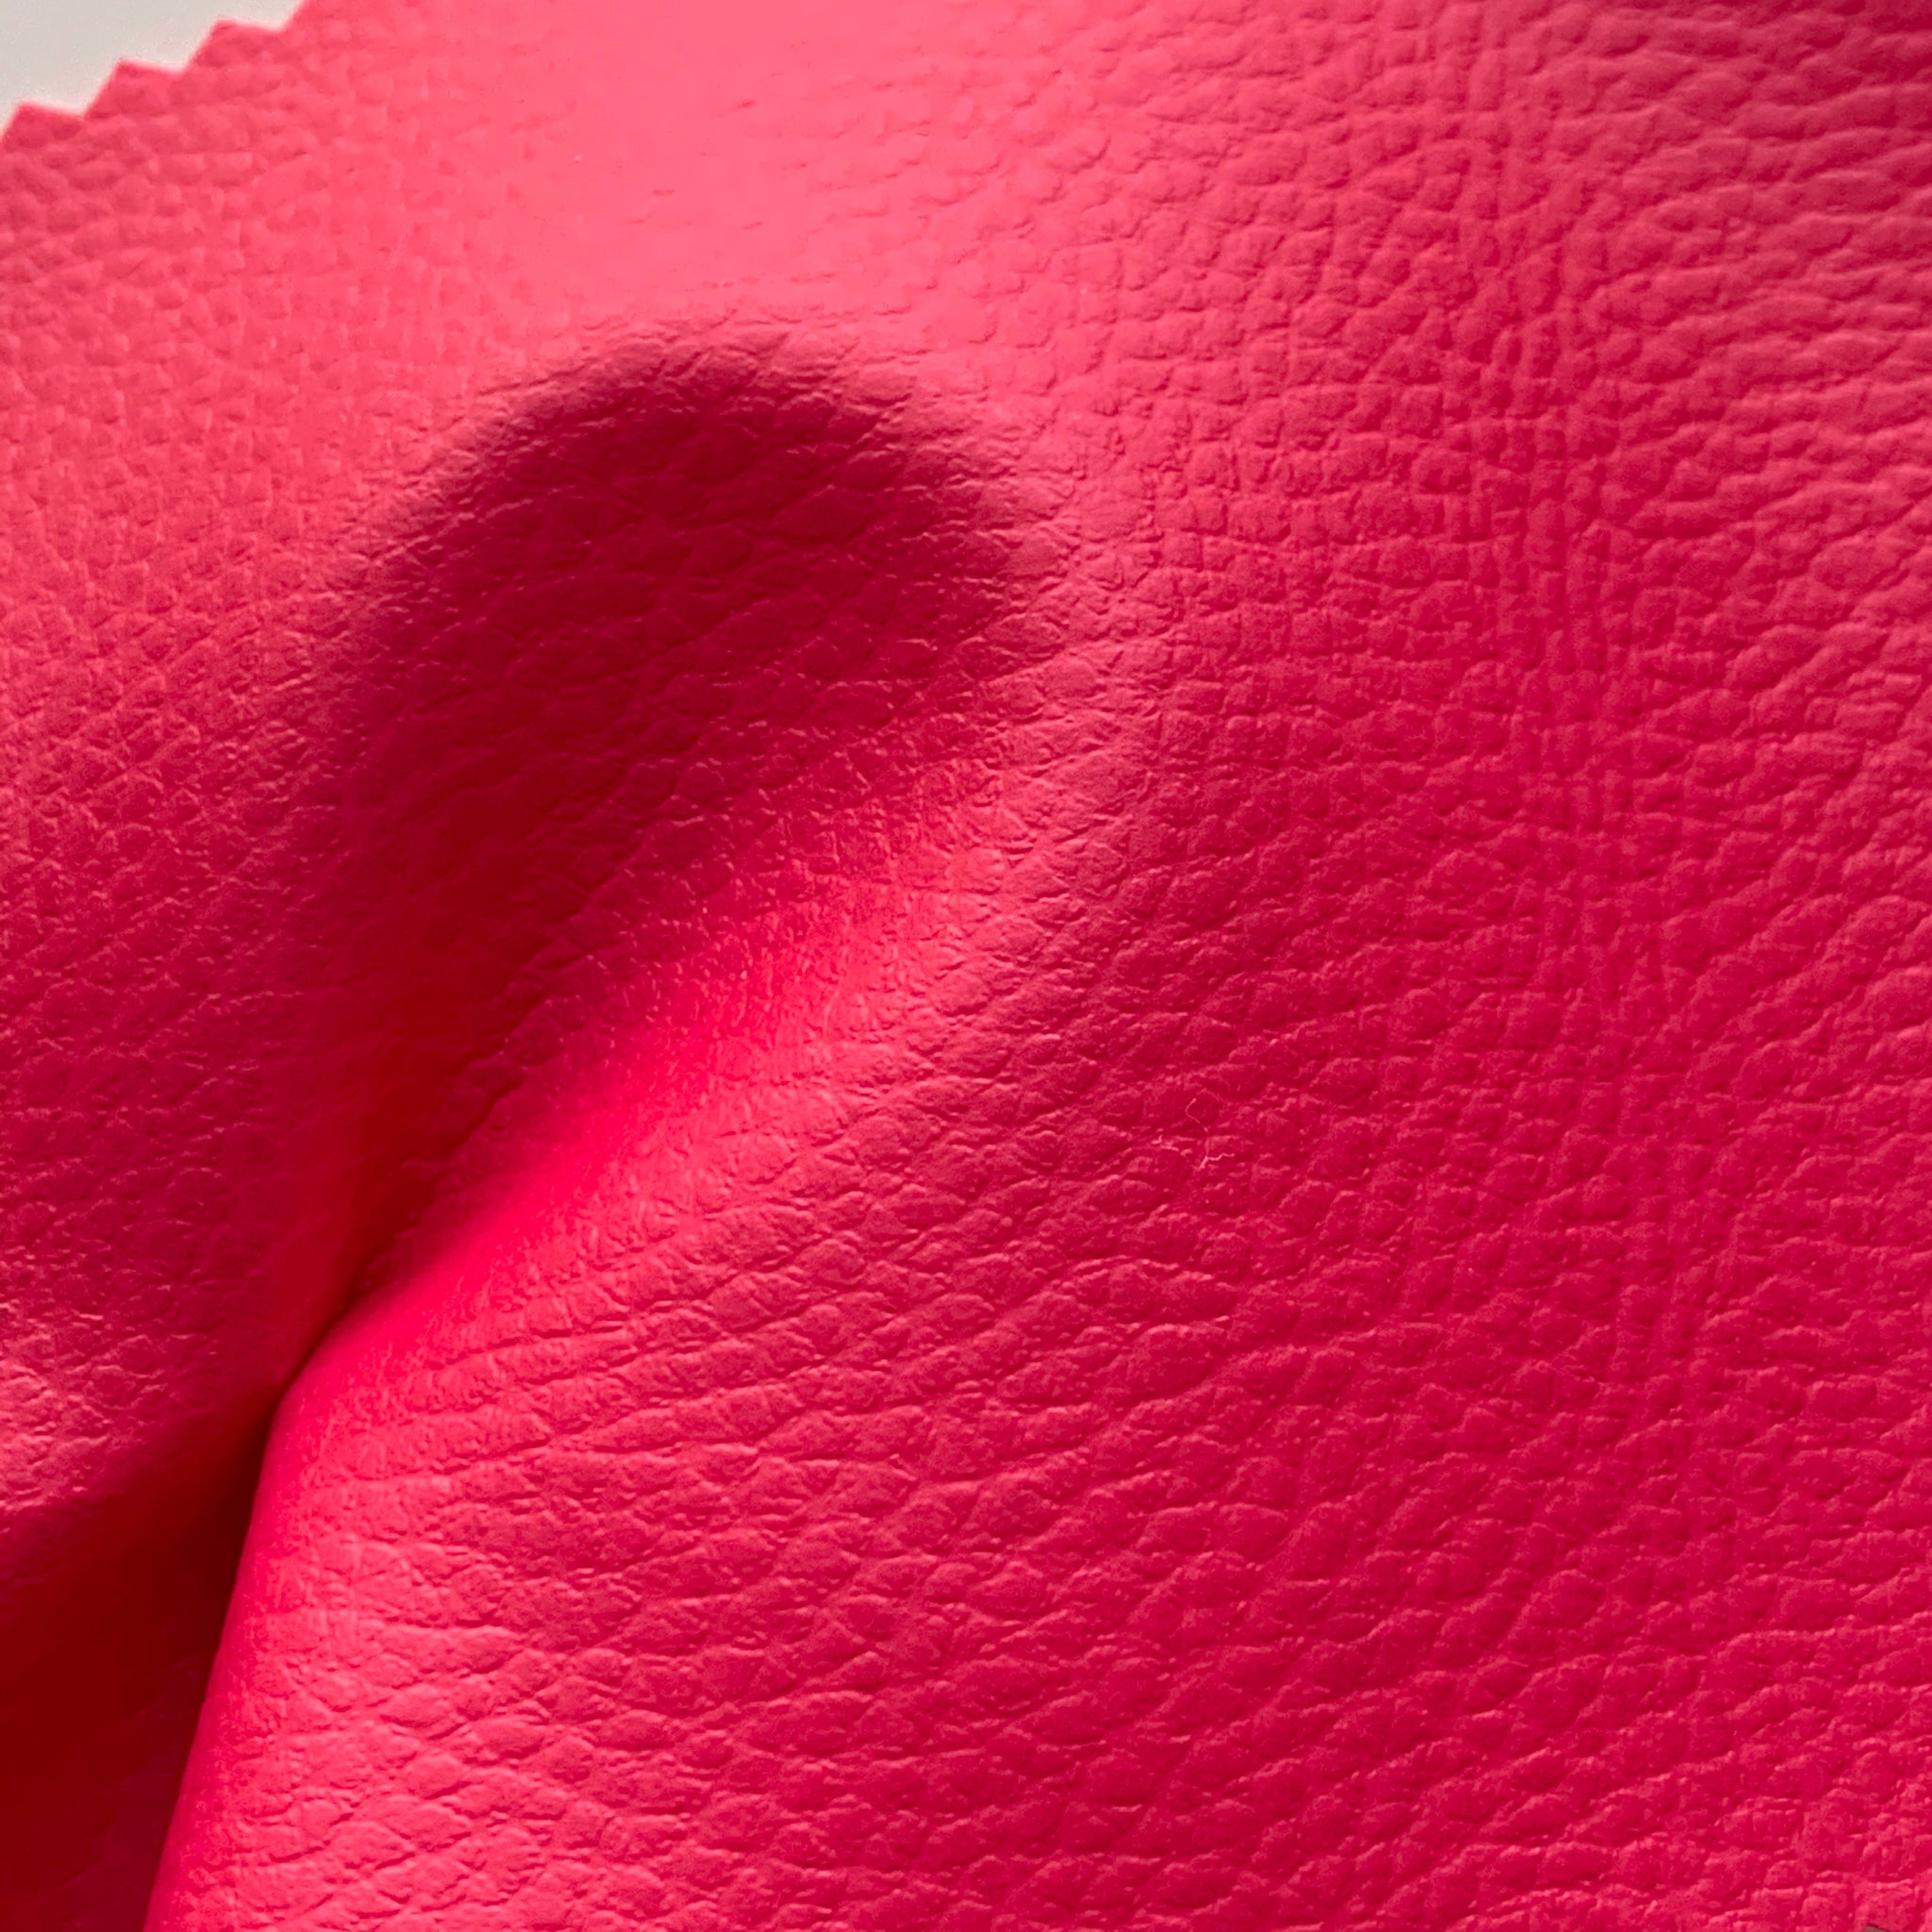 Medium Grain Faux Leather Pleather Fabric - FUCHSIA PINK